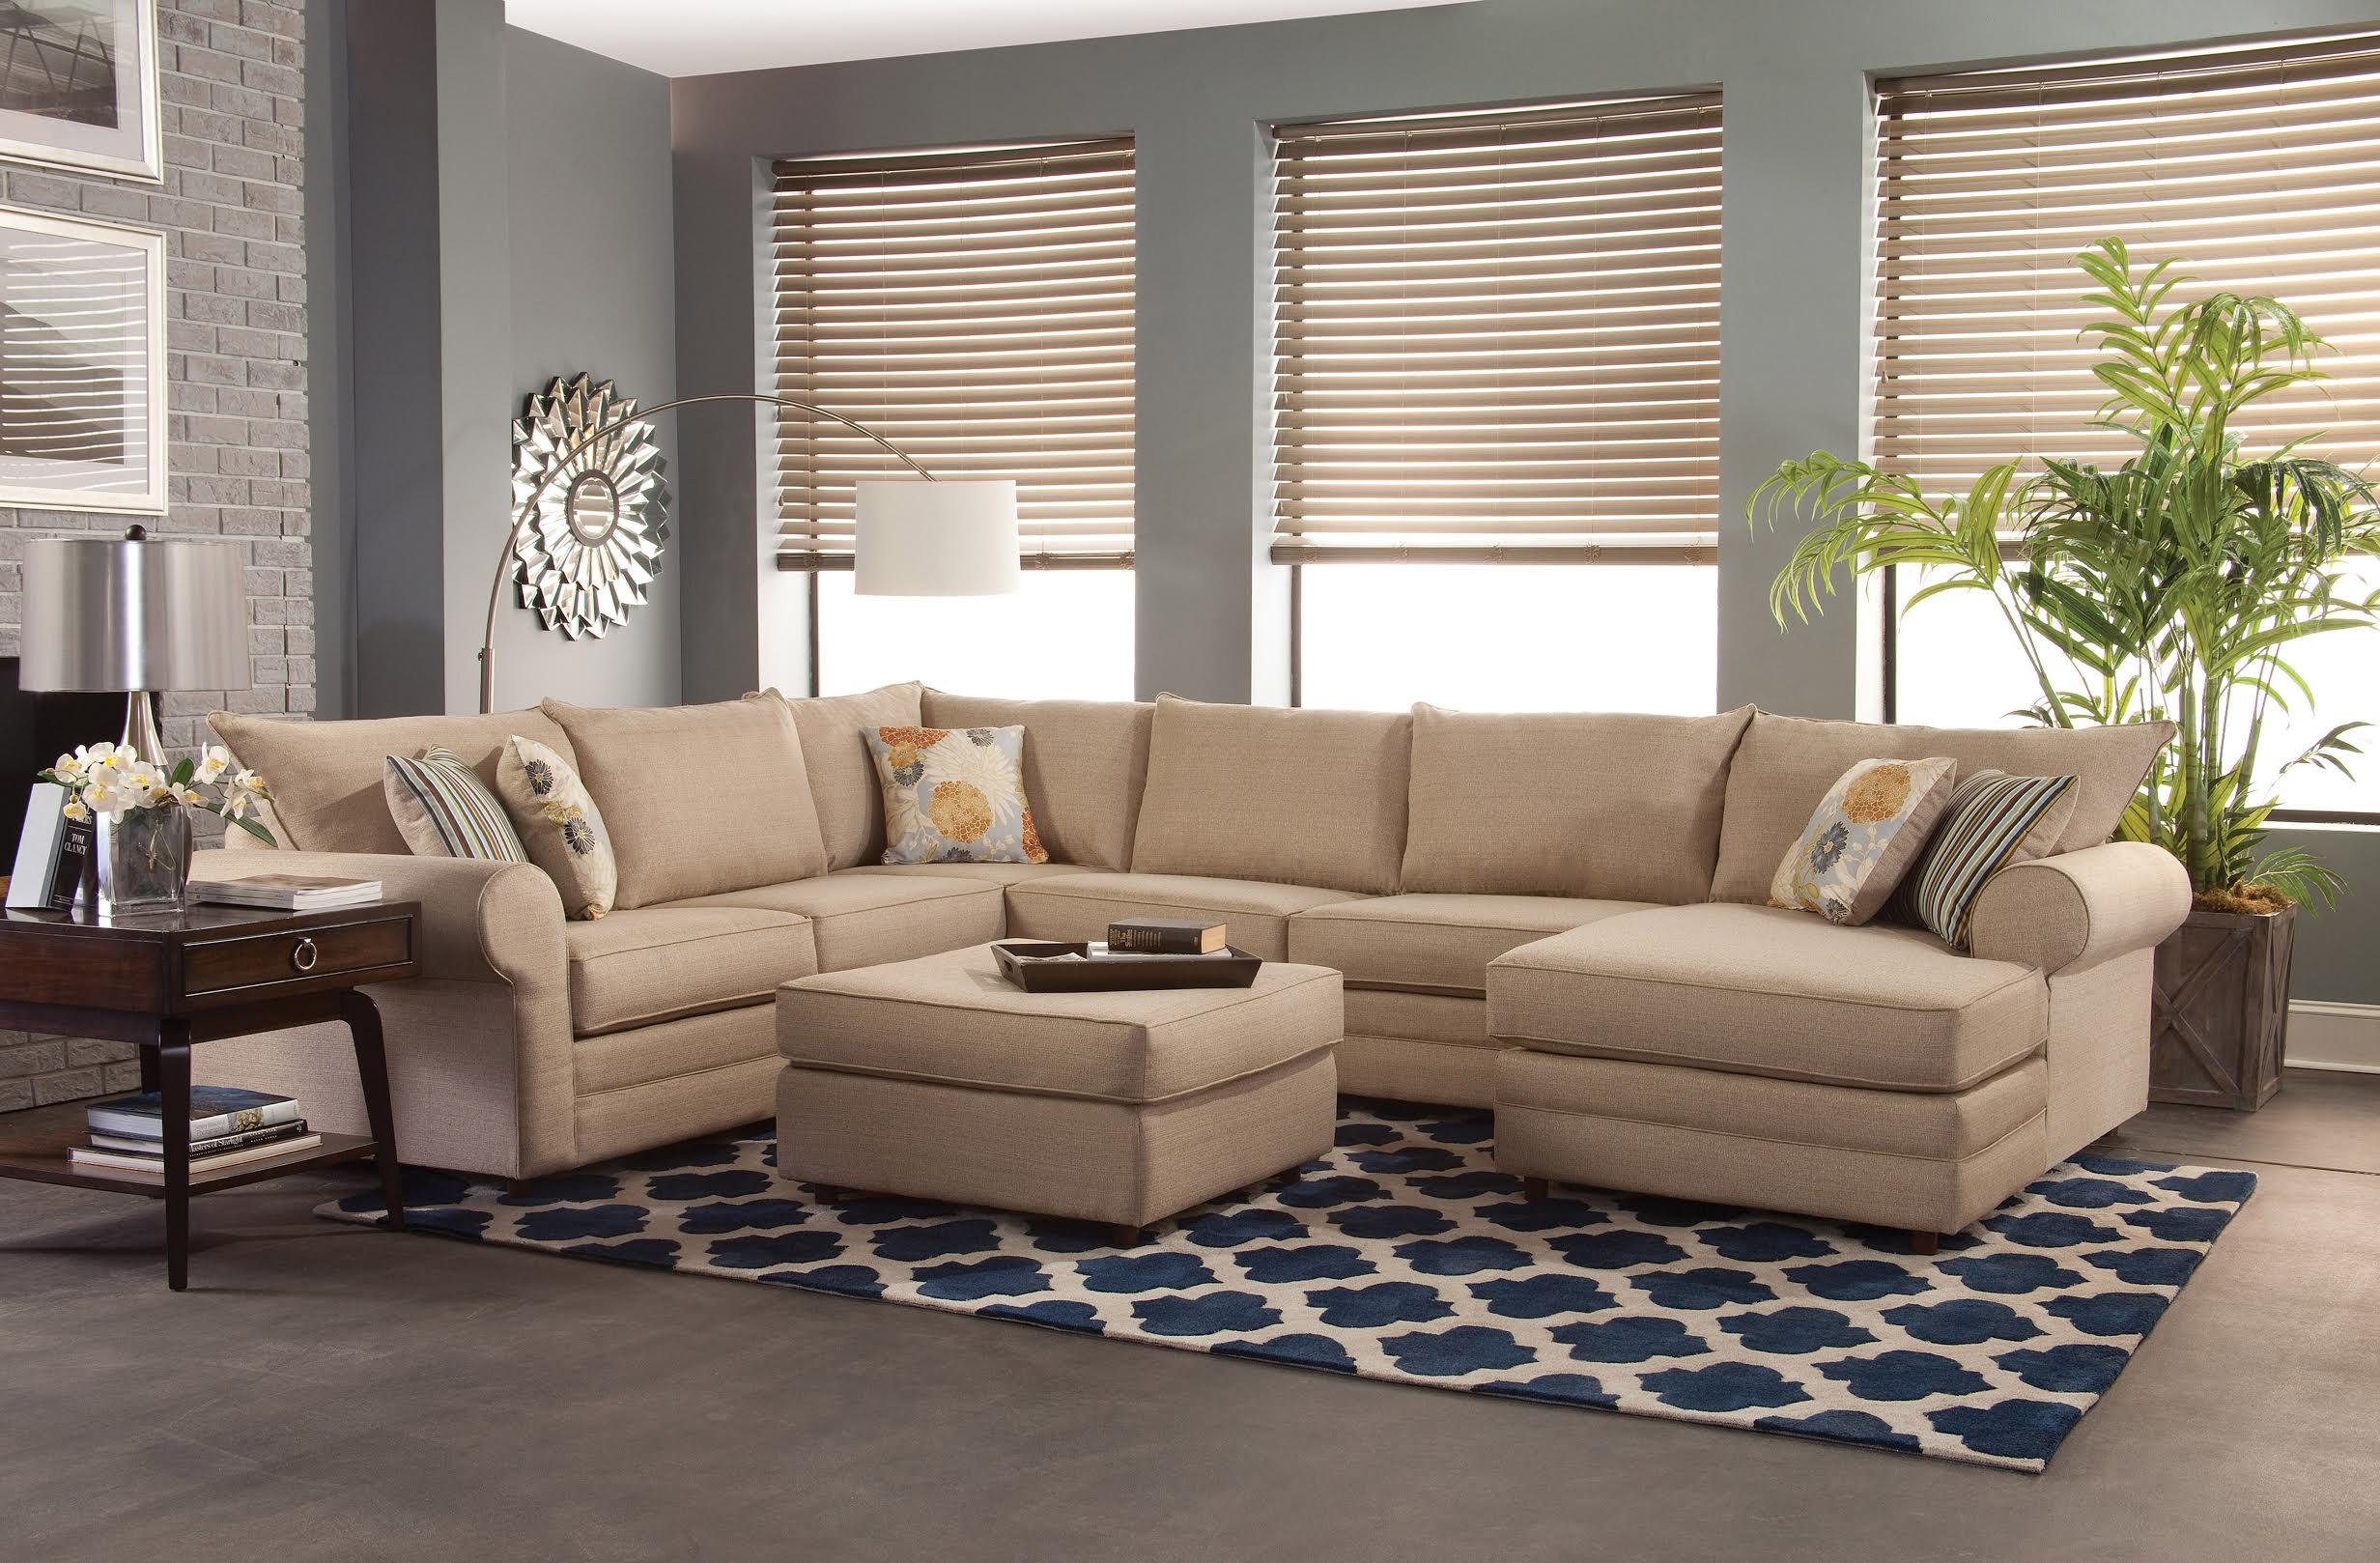 Belfort essentials monticello casual sectional sofa for Casual couch